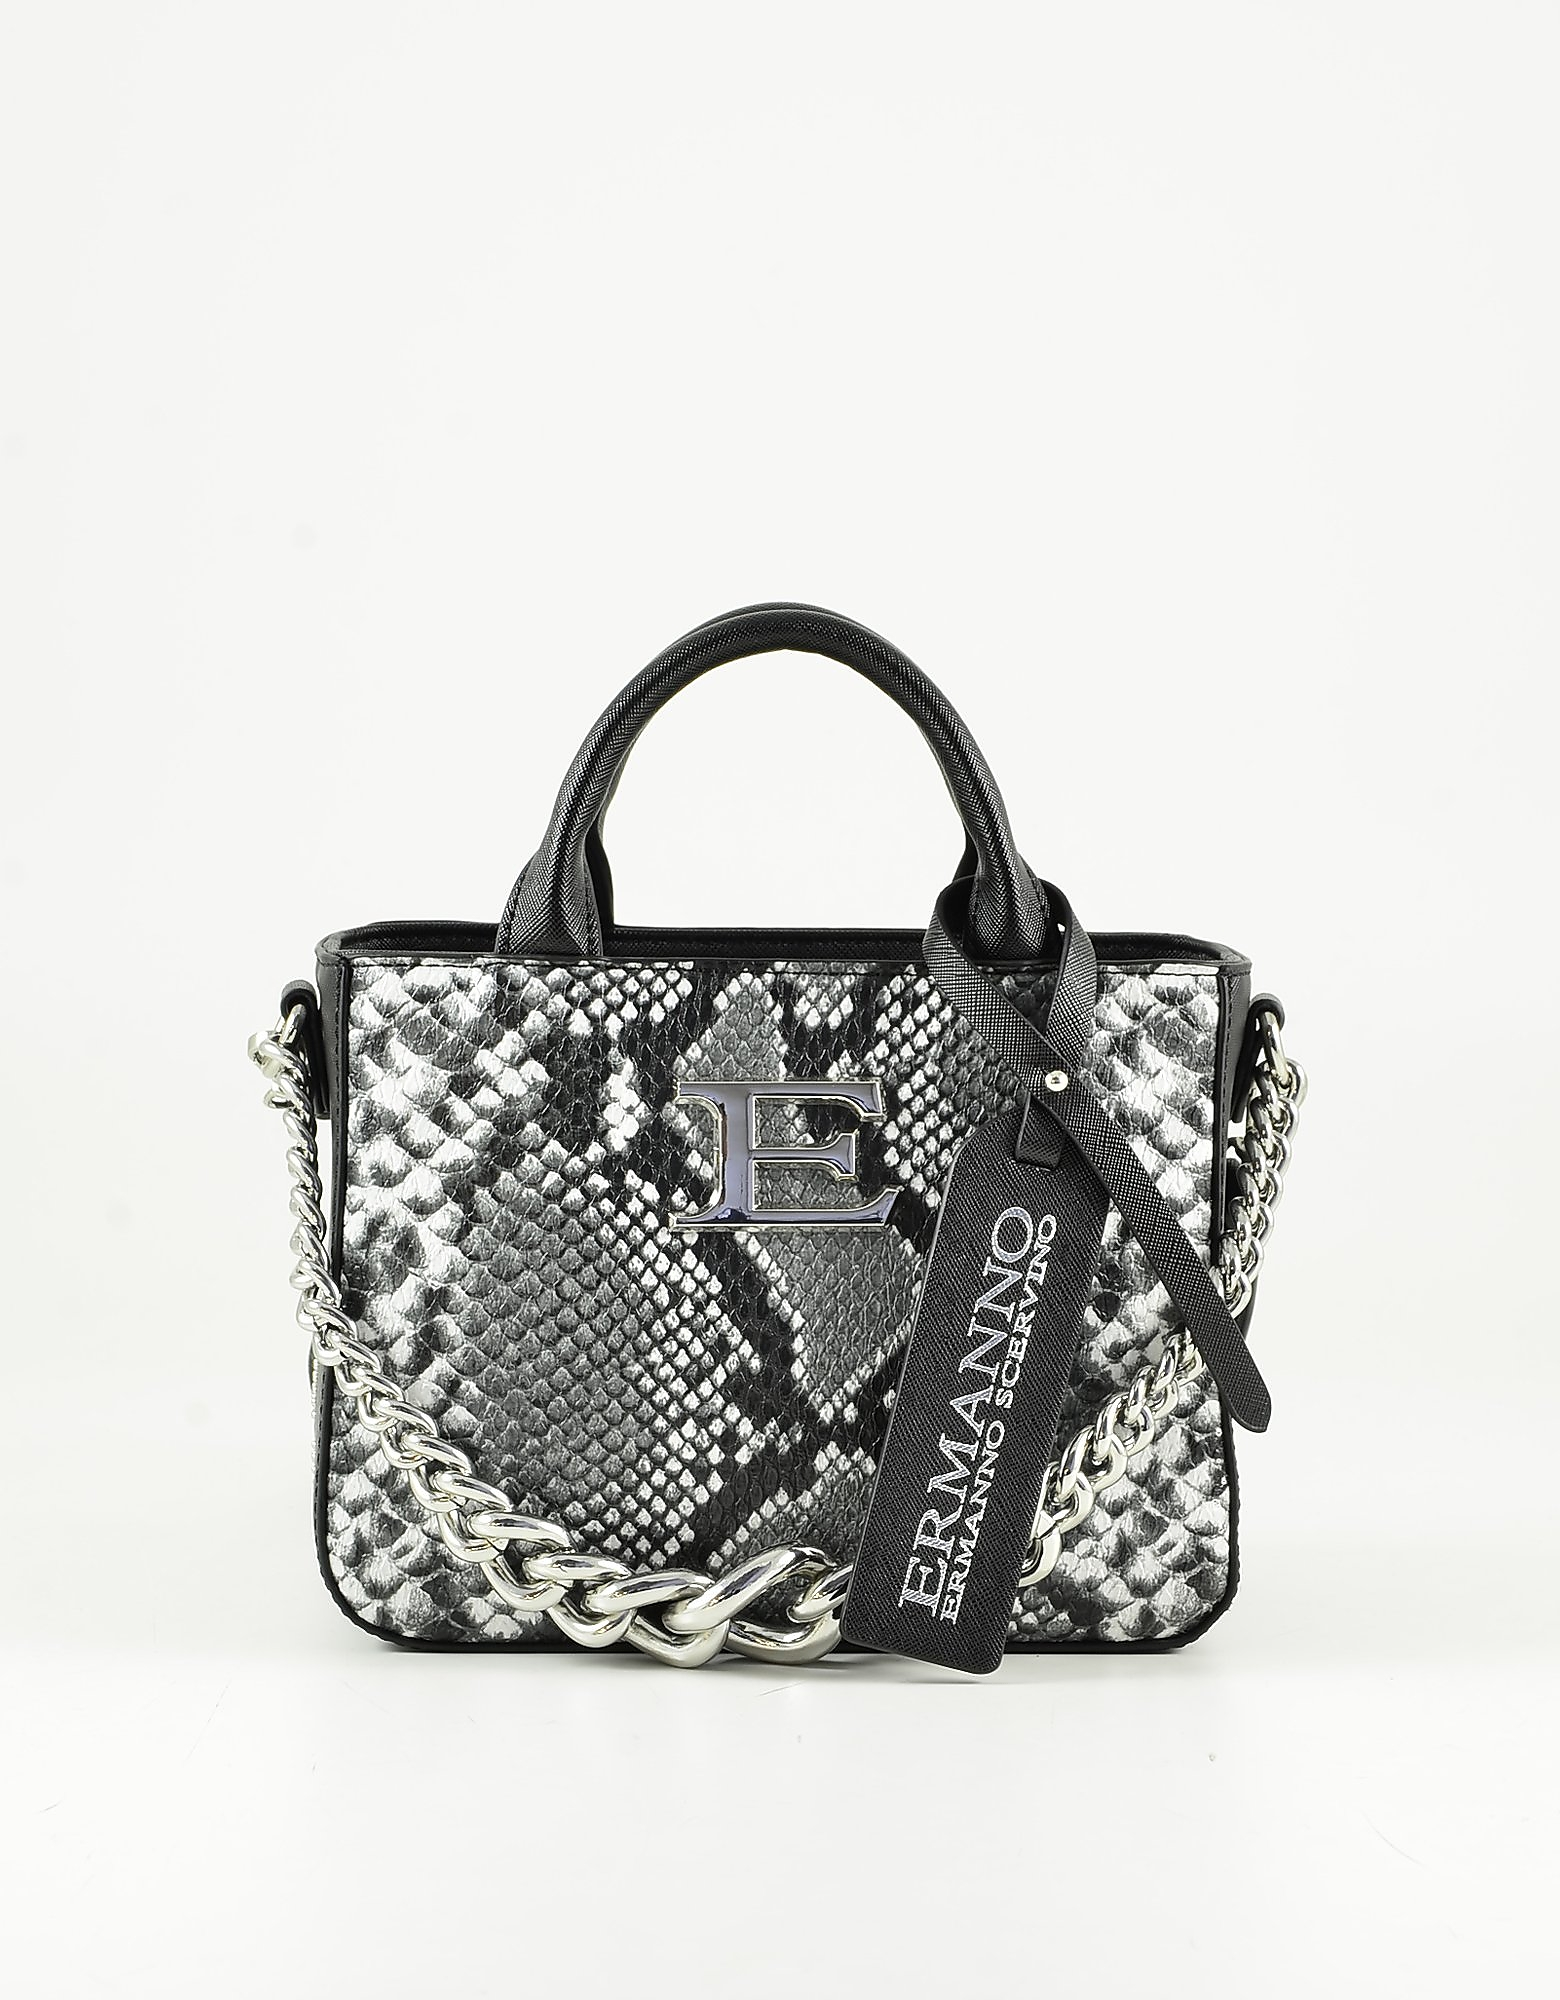 Ermanno Scervino Black Python Embossed Eco-leather Small Top Handle Bag